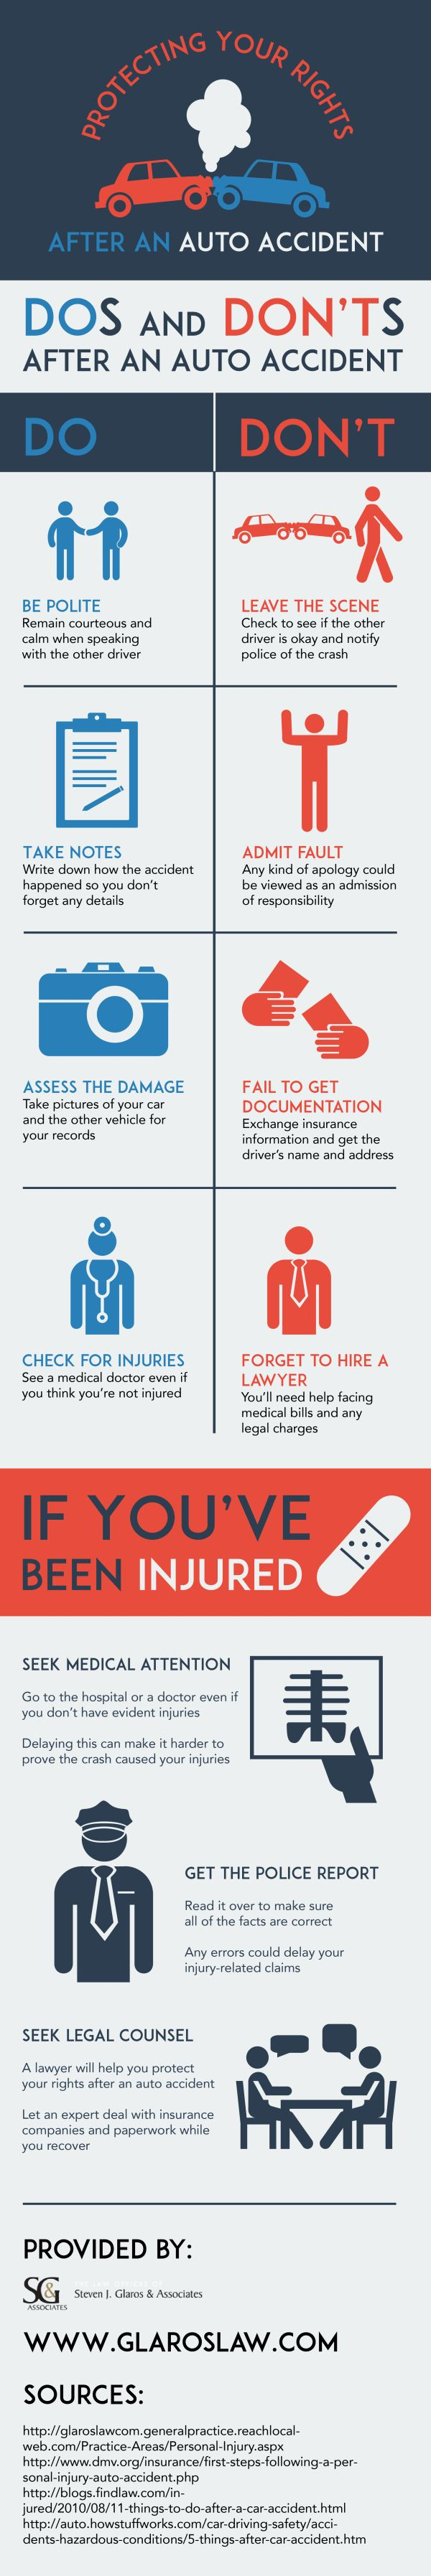 It is important to stay at the scene after an auto accident. Check for injuries, check to see if the other driver is okay, and notify police of the crash. View this Tampa Bay lawyer infographic to discover more steps to take after auto accidents.